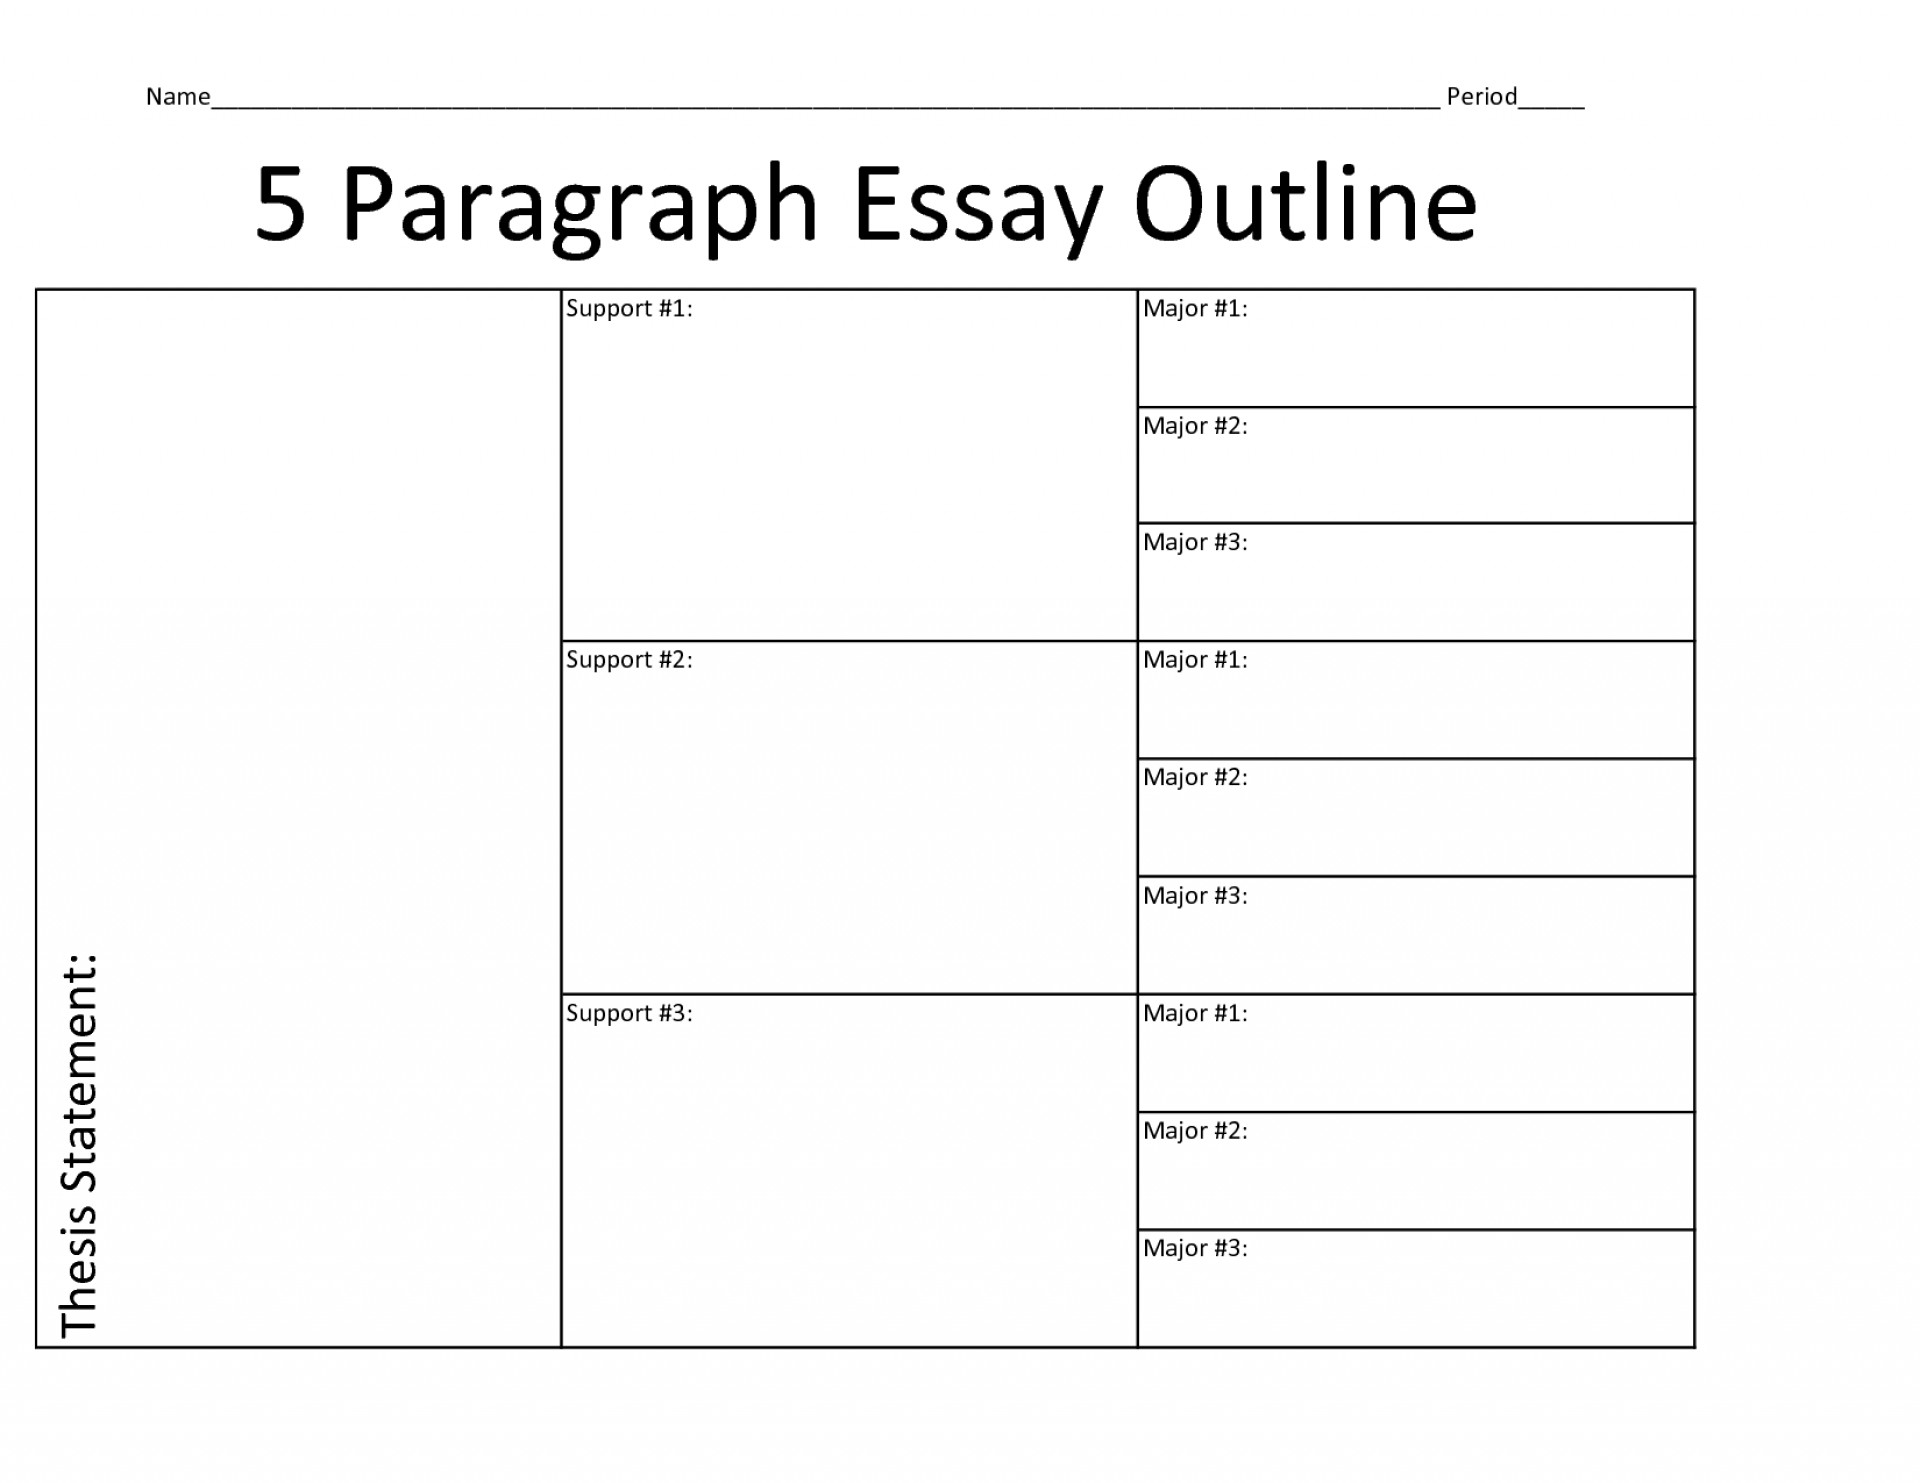 024 Paragraph Essay Outline Example Template For